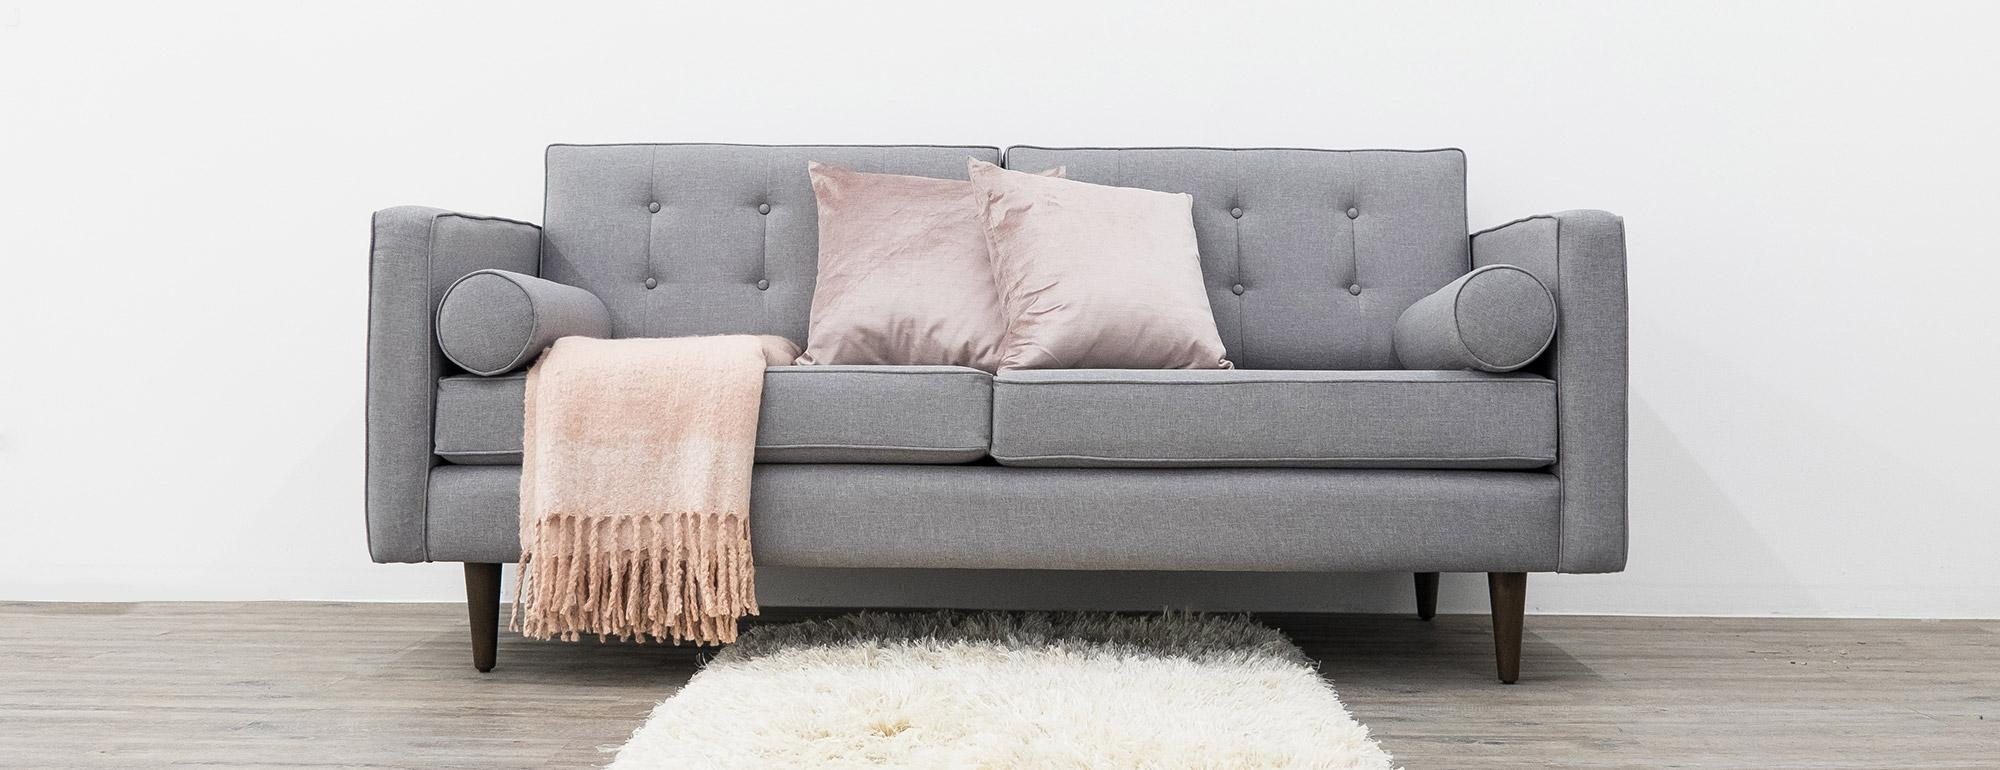 Braxton Loveseat | Joybird In Braxton Sofa (Image 6 of 20)